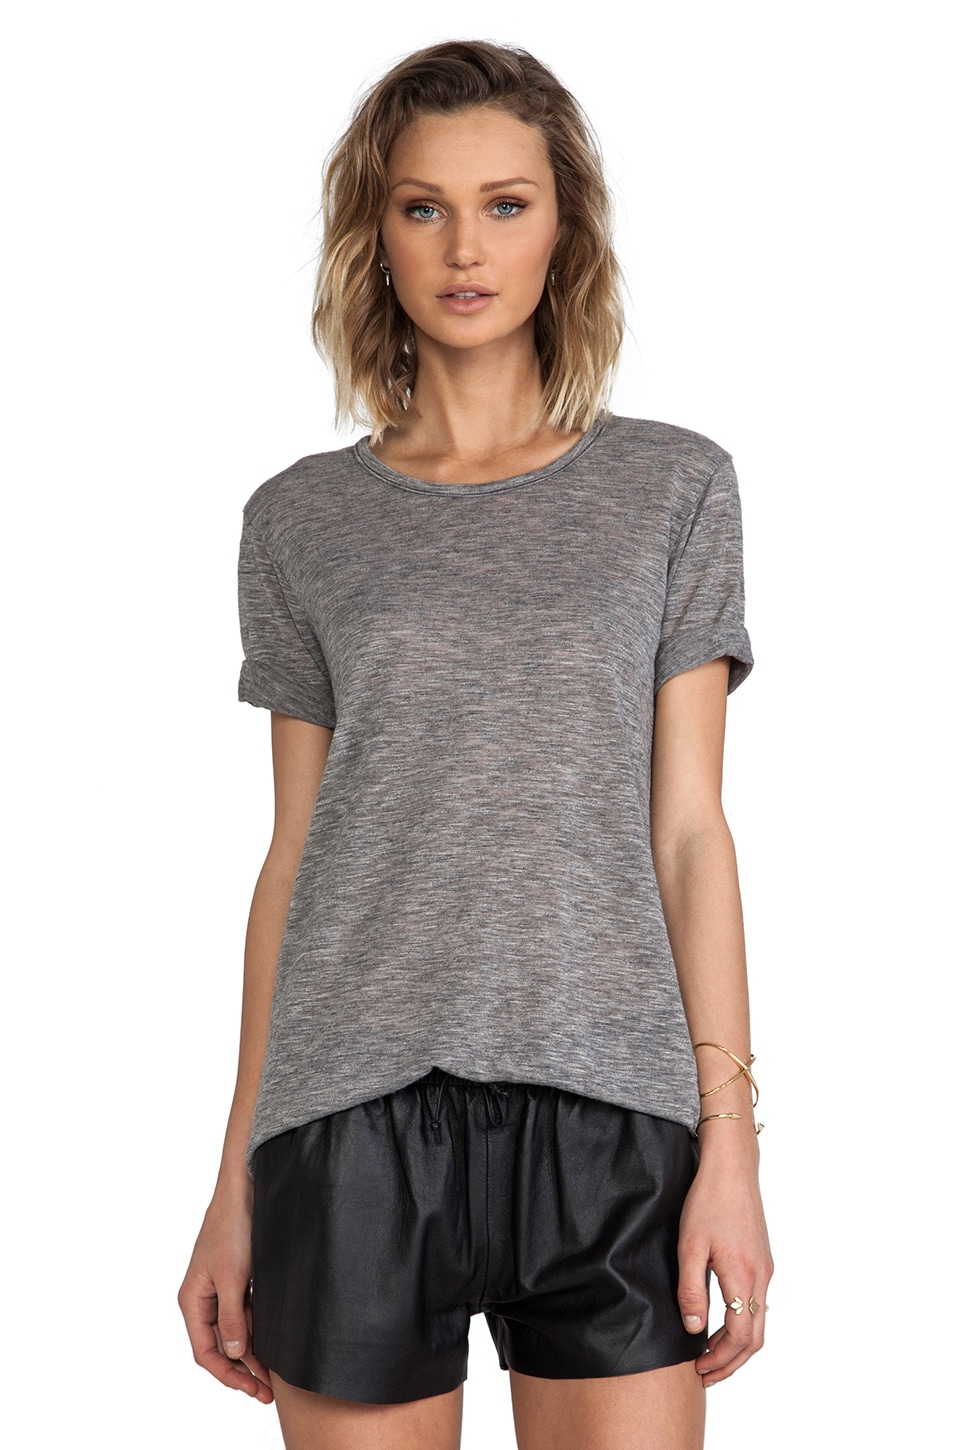 MONROW Poly Rayon Fashion Tee in Black